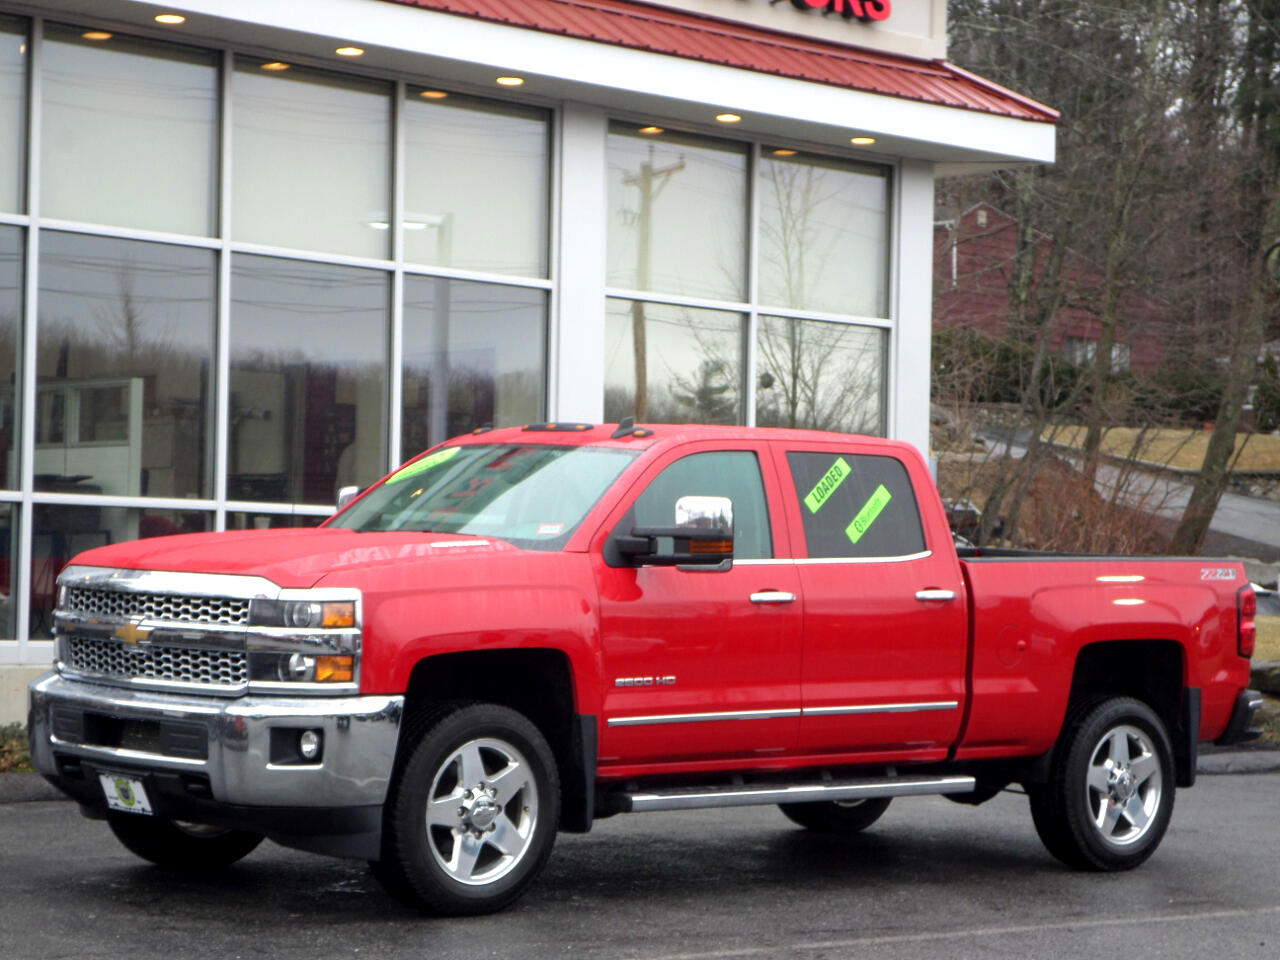 2015 Chevrolet Silverado 2500HD DURAMAX DIESEL ALLISON TRANS LOADED LTZ